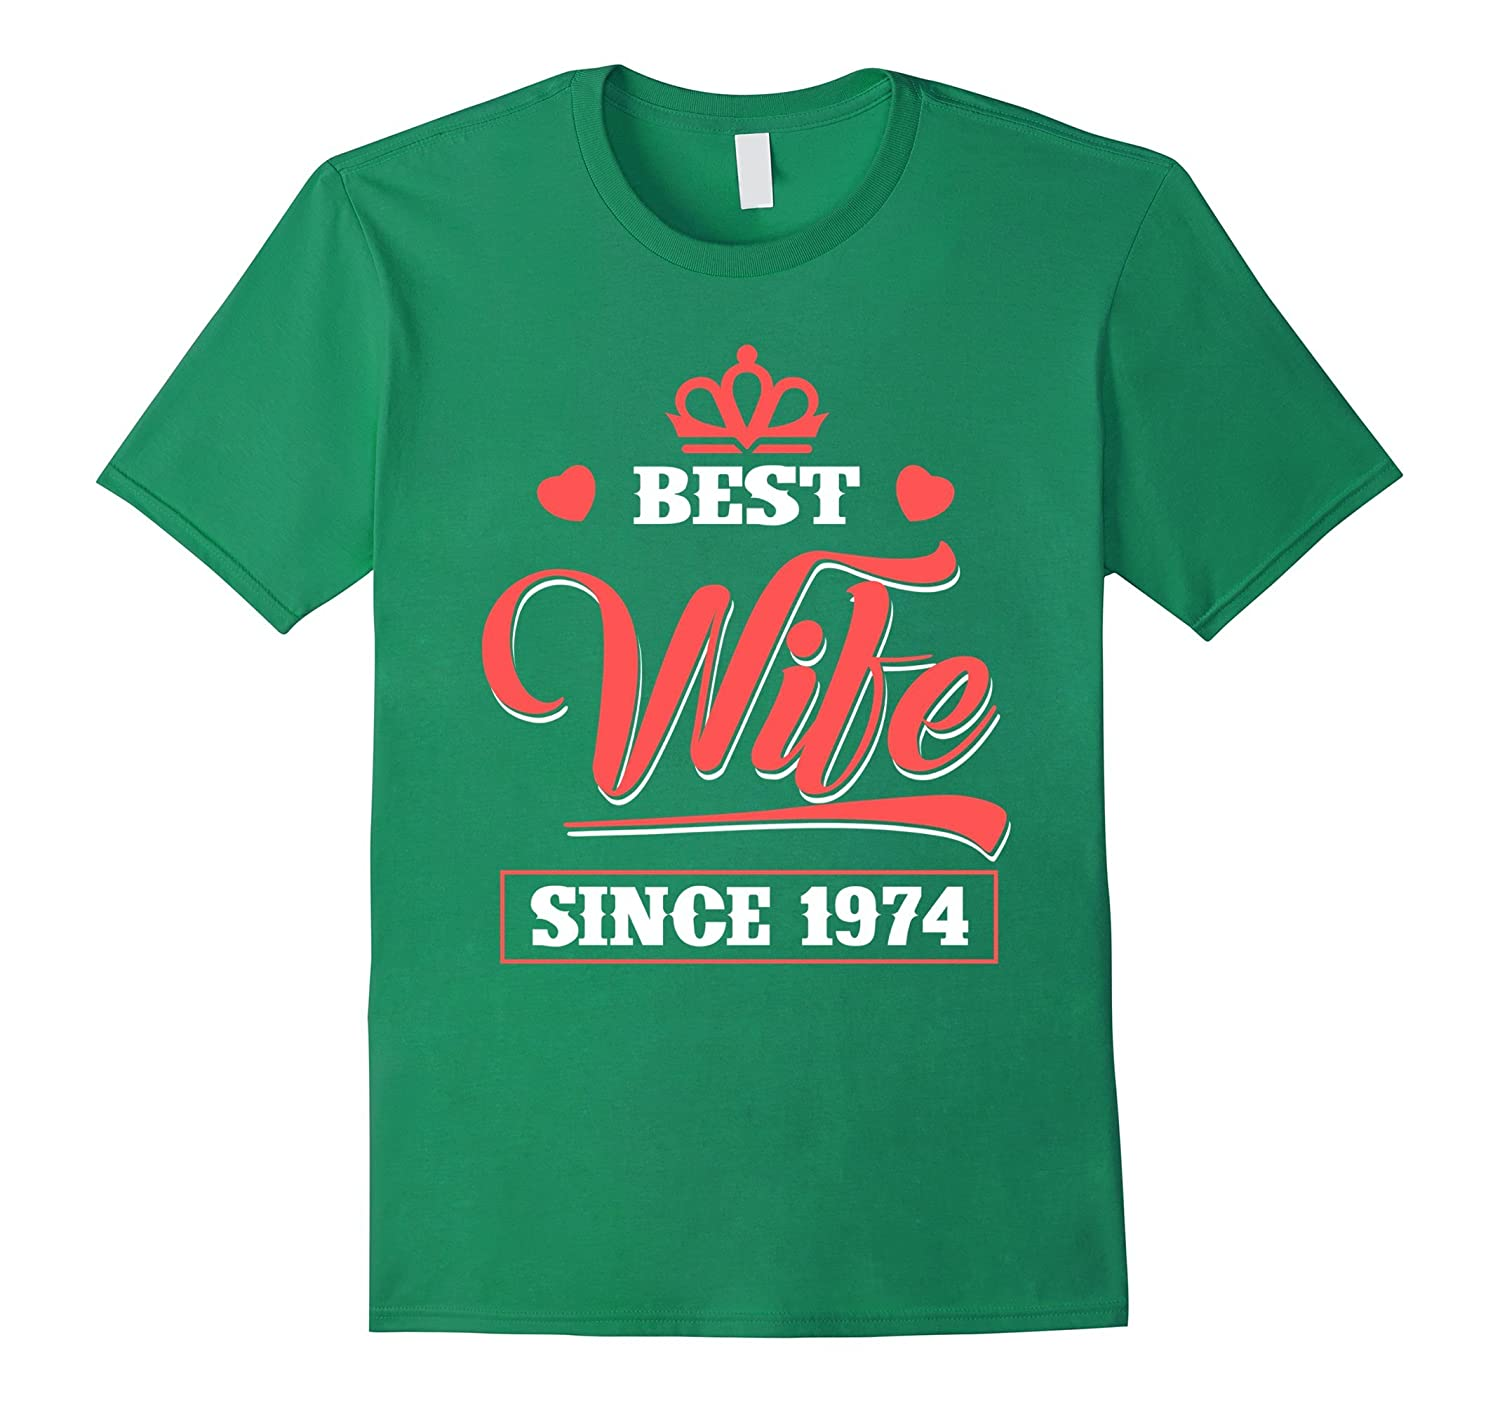 43rd Wedding Anniversary Gifts: Beautiful T-Shirt For Wife 43rd Wedding Anniversary Gift